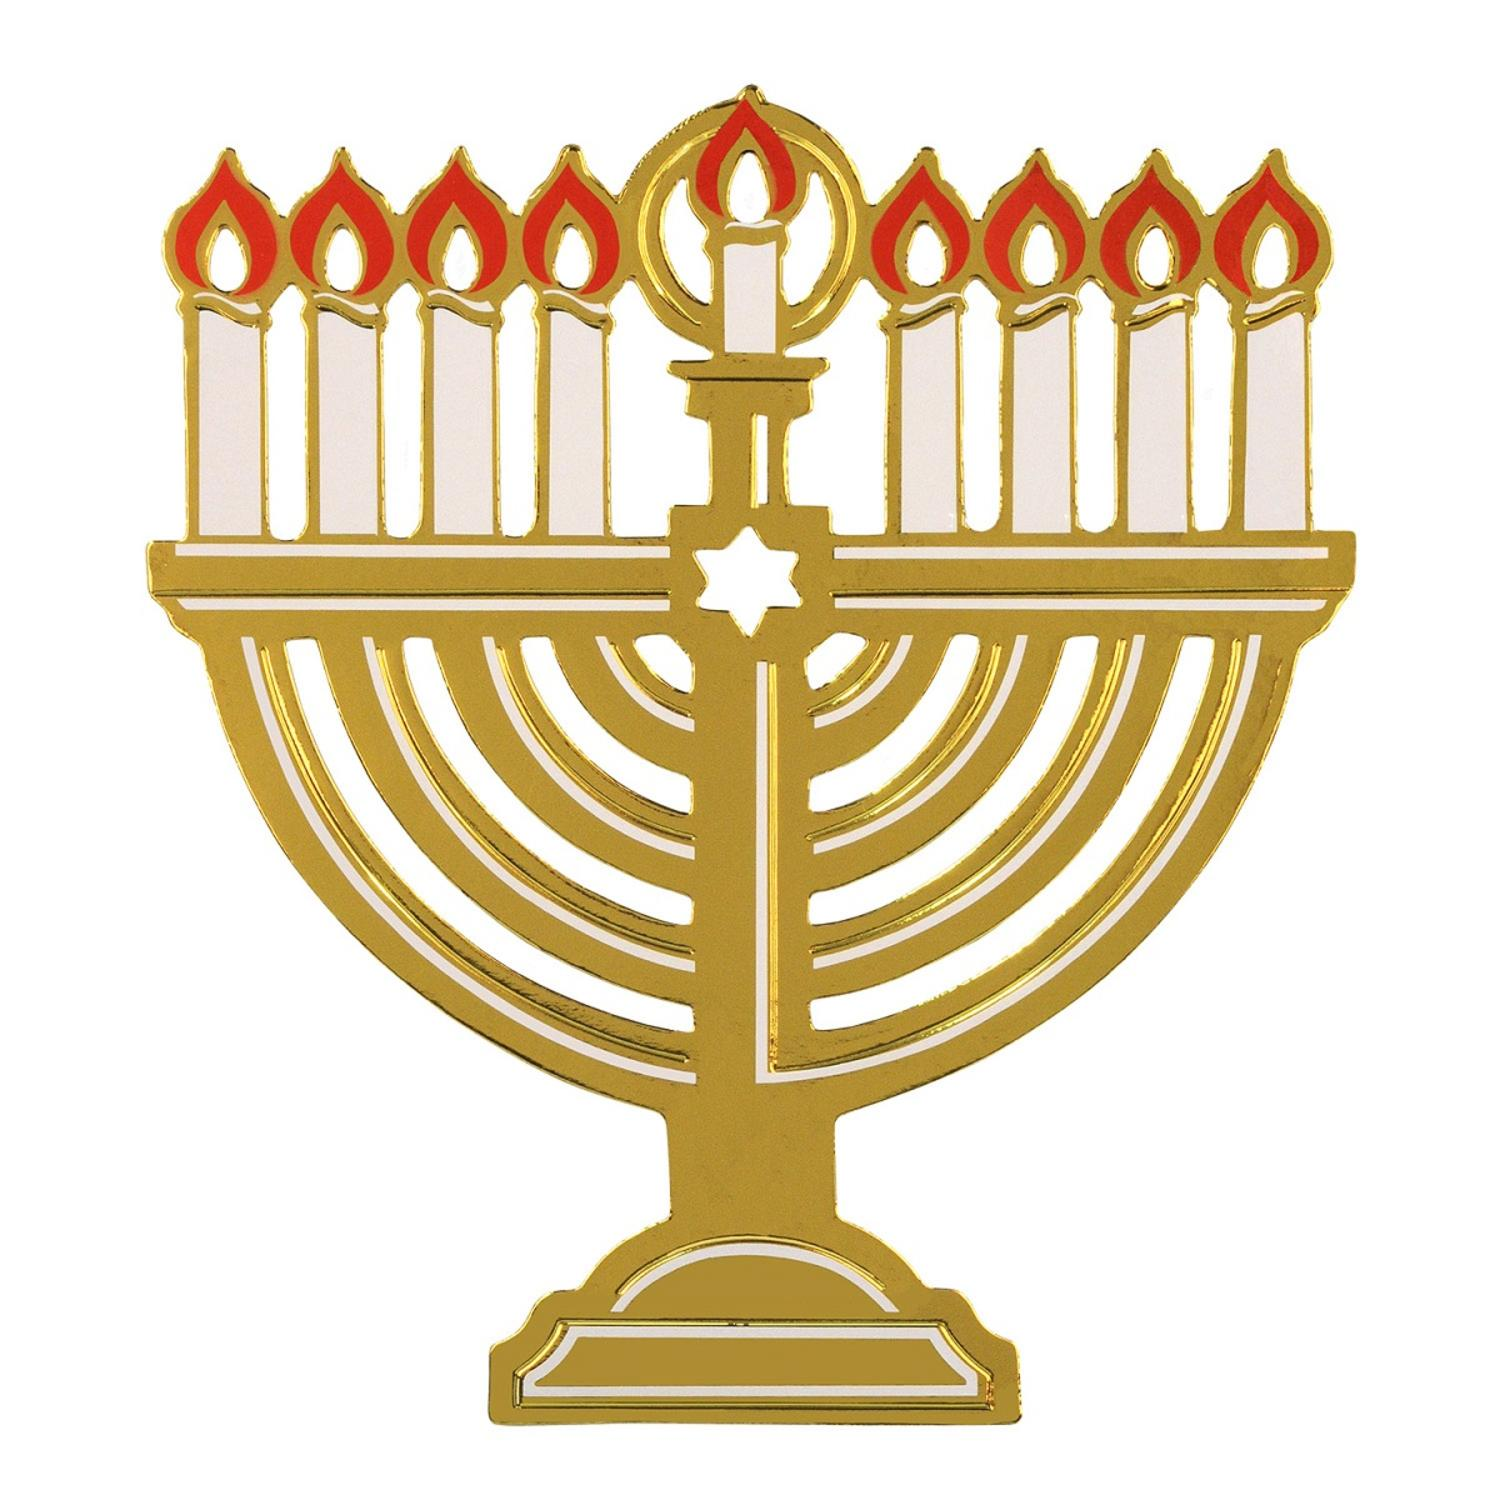 Club Pack of 24 Gold Foil Menorah Hanukkah Cutout Decorations 14.5""